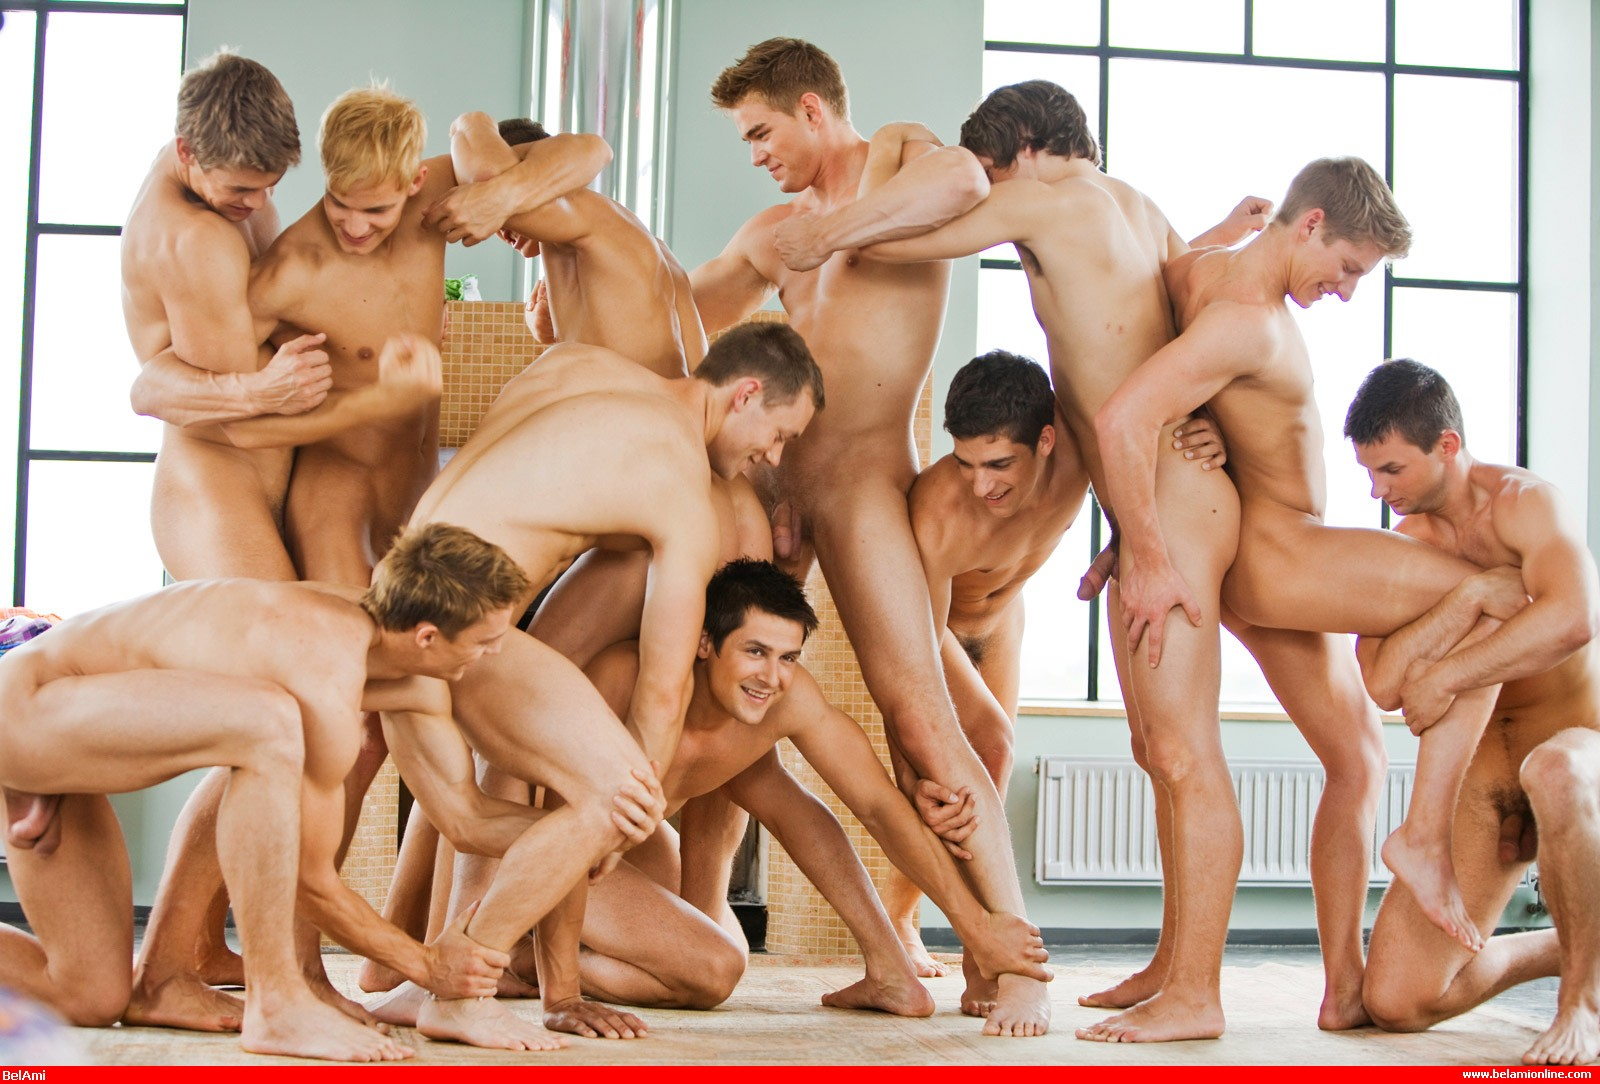 Teen group of naked boys blonde muscle 5